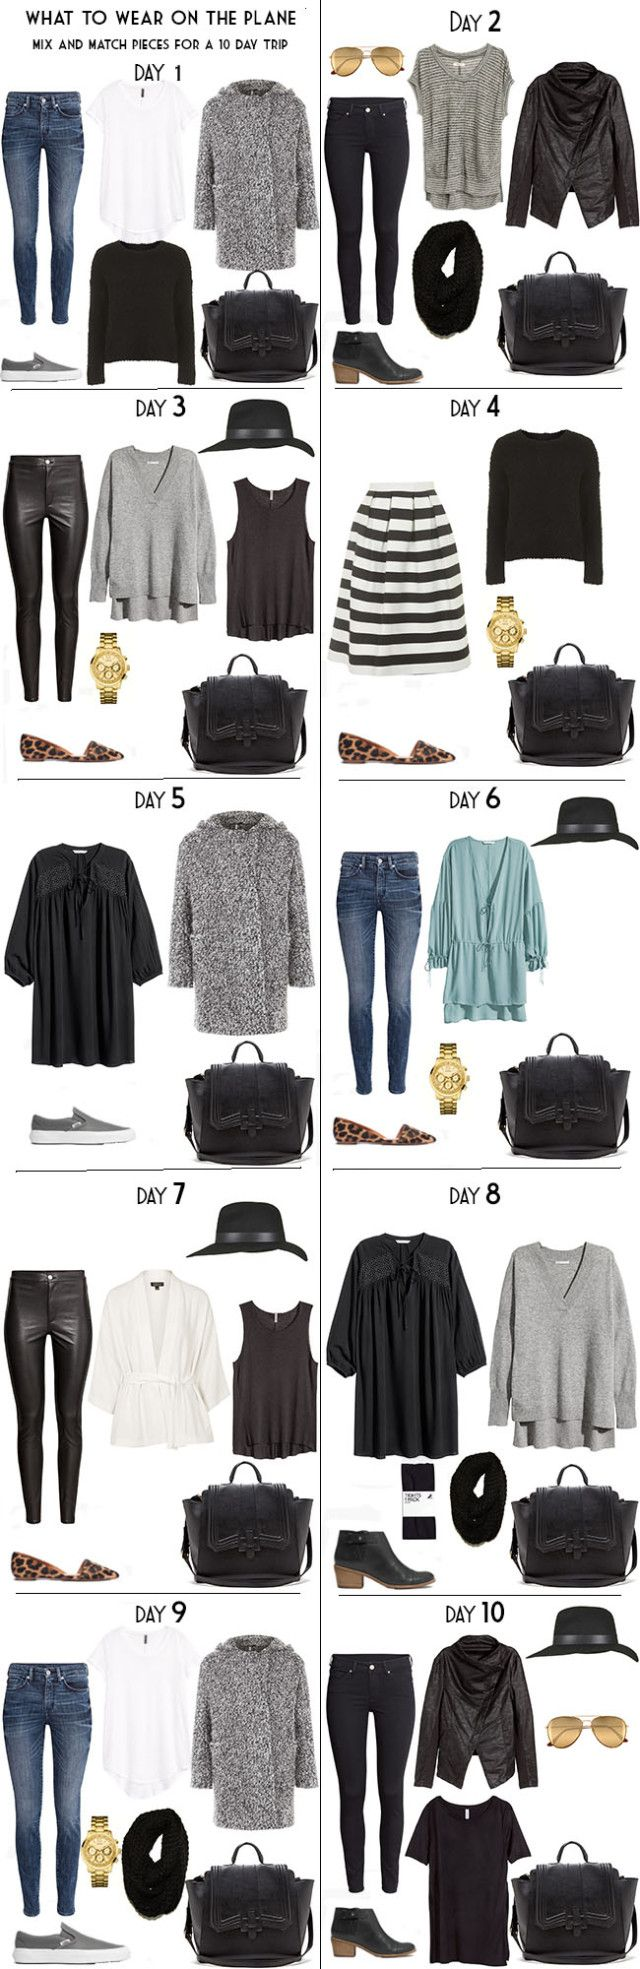 Best Winter Travel Outfit Ideas On Pinterest Capsule - 10 great winter vacation ideas